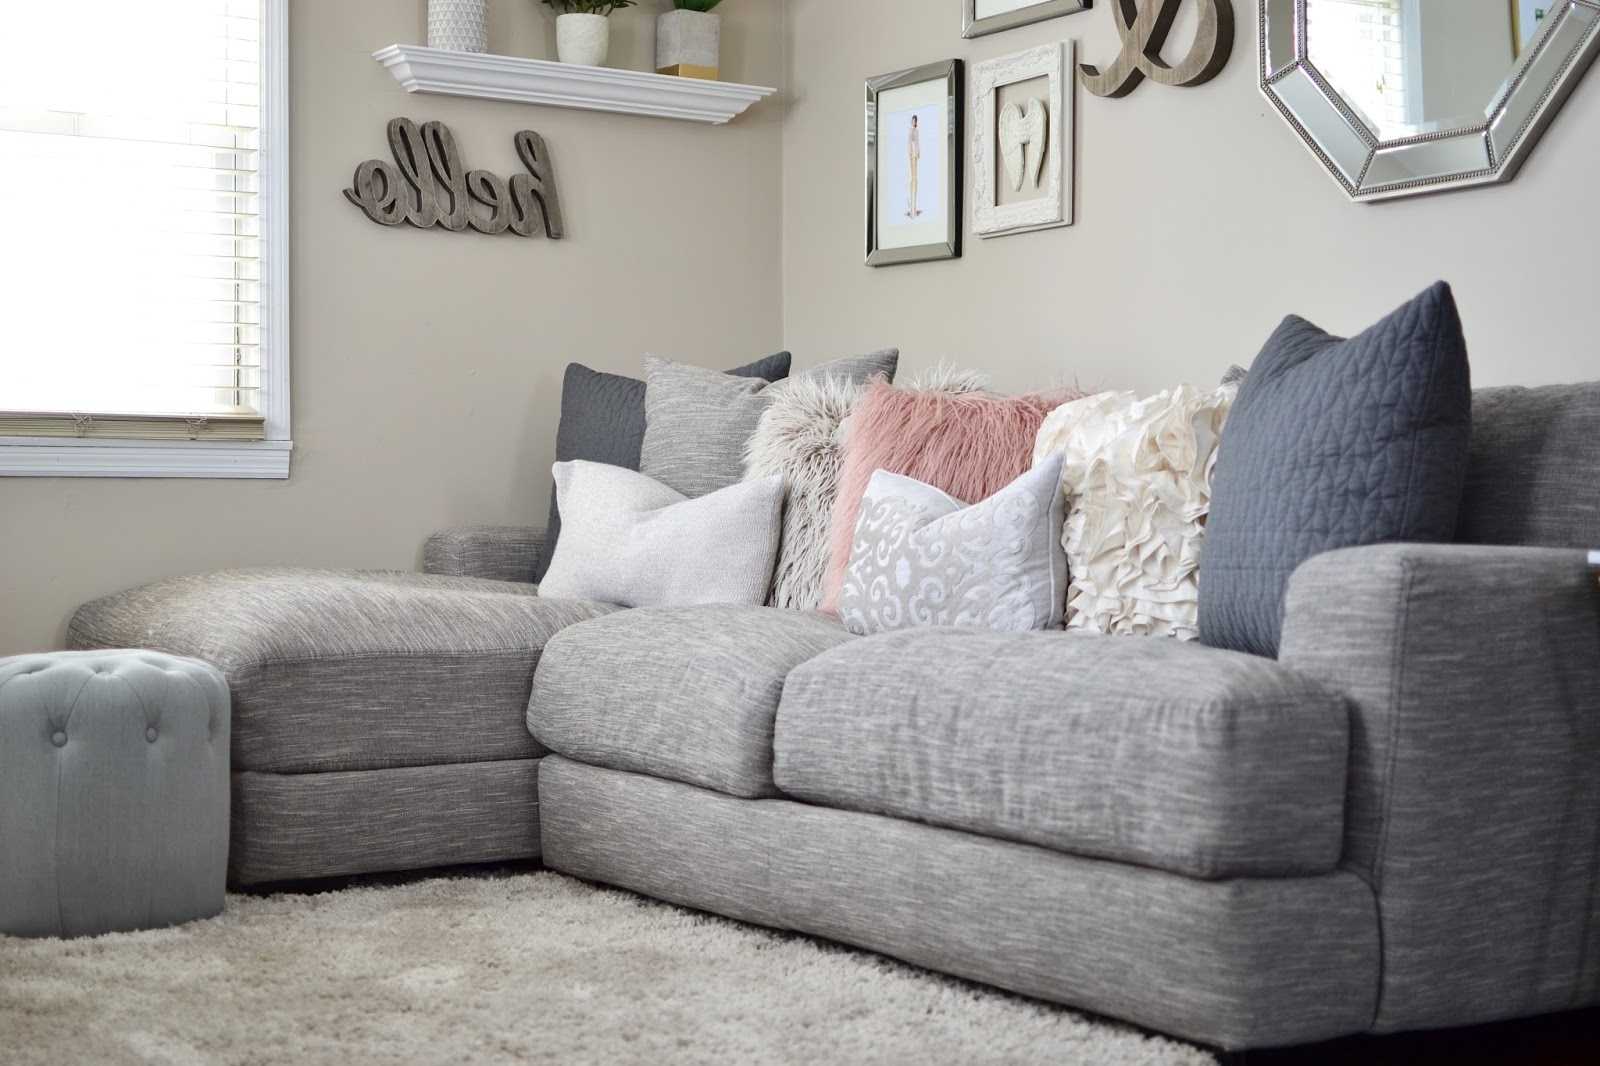 Widely Used Sectional Sofas At Raymour And Flanigan Pertaining To Our Living Room Tour (View 5 of 20)